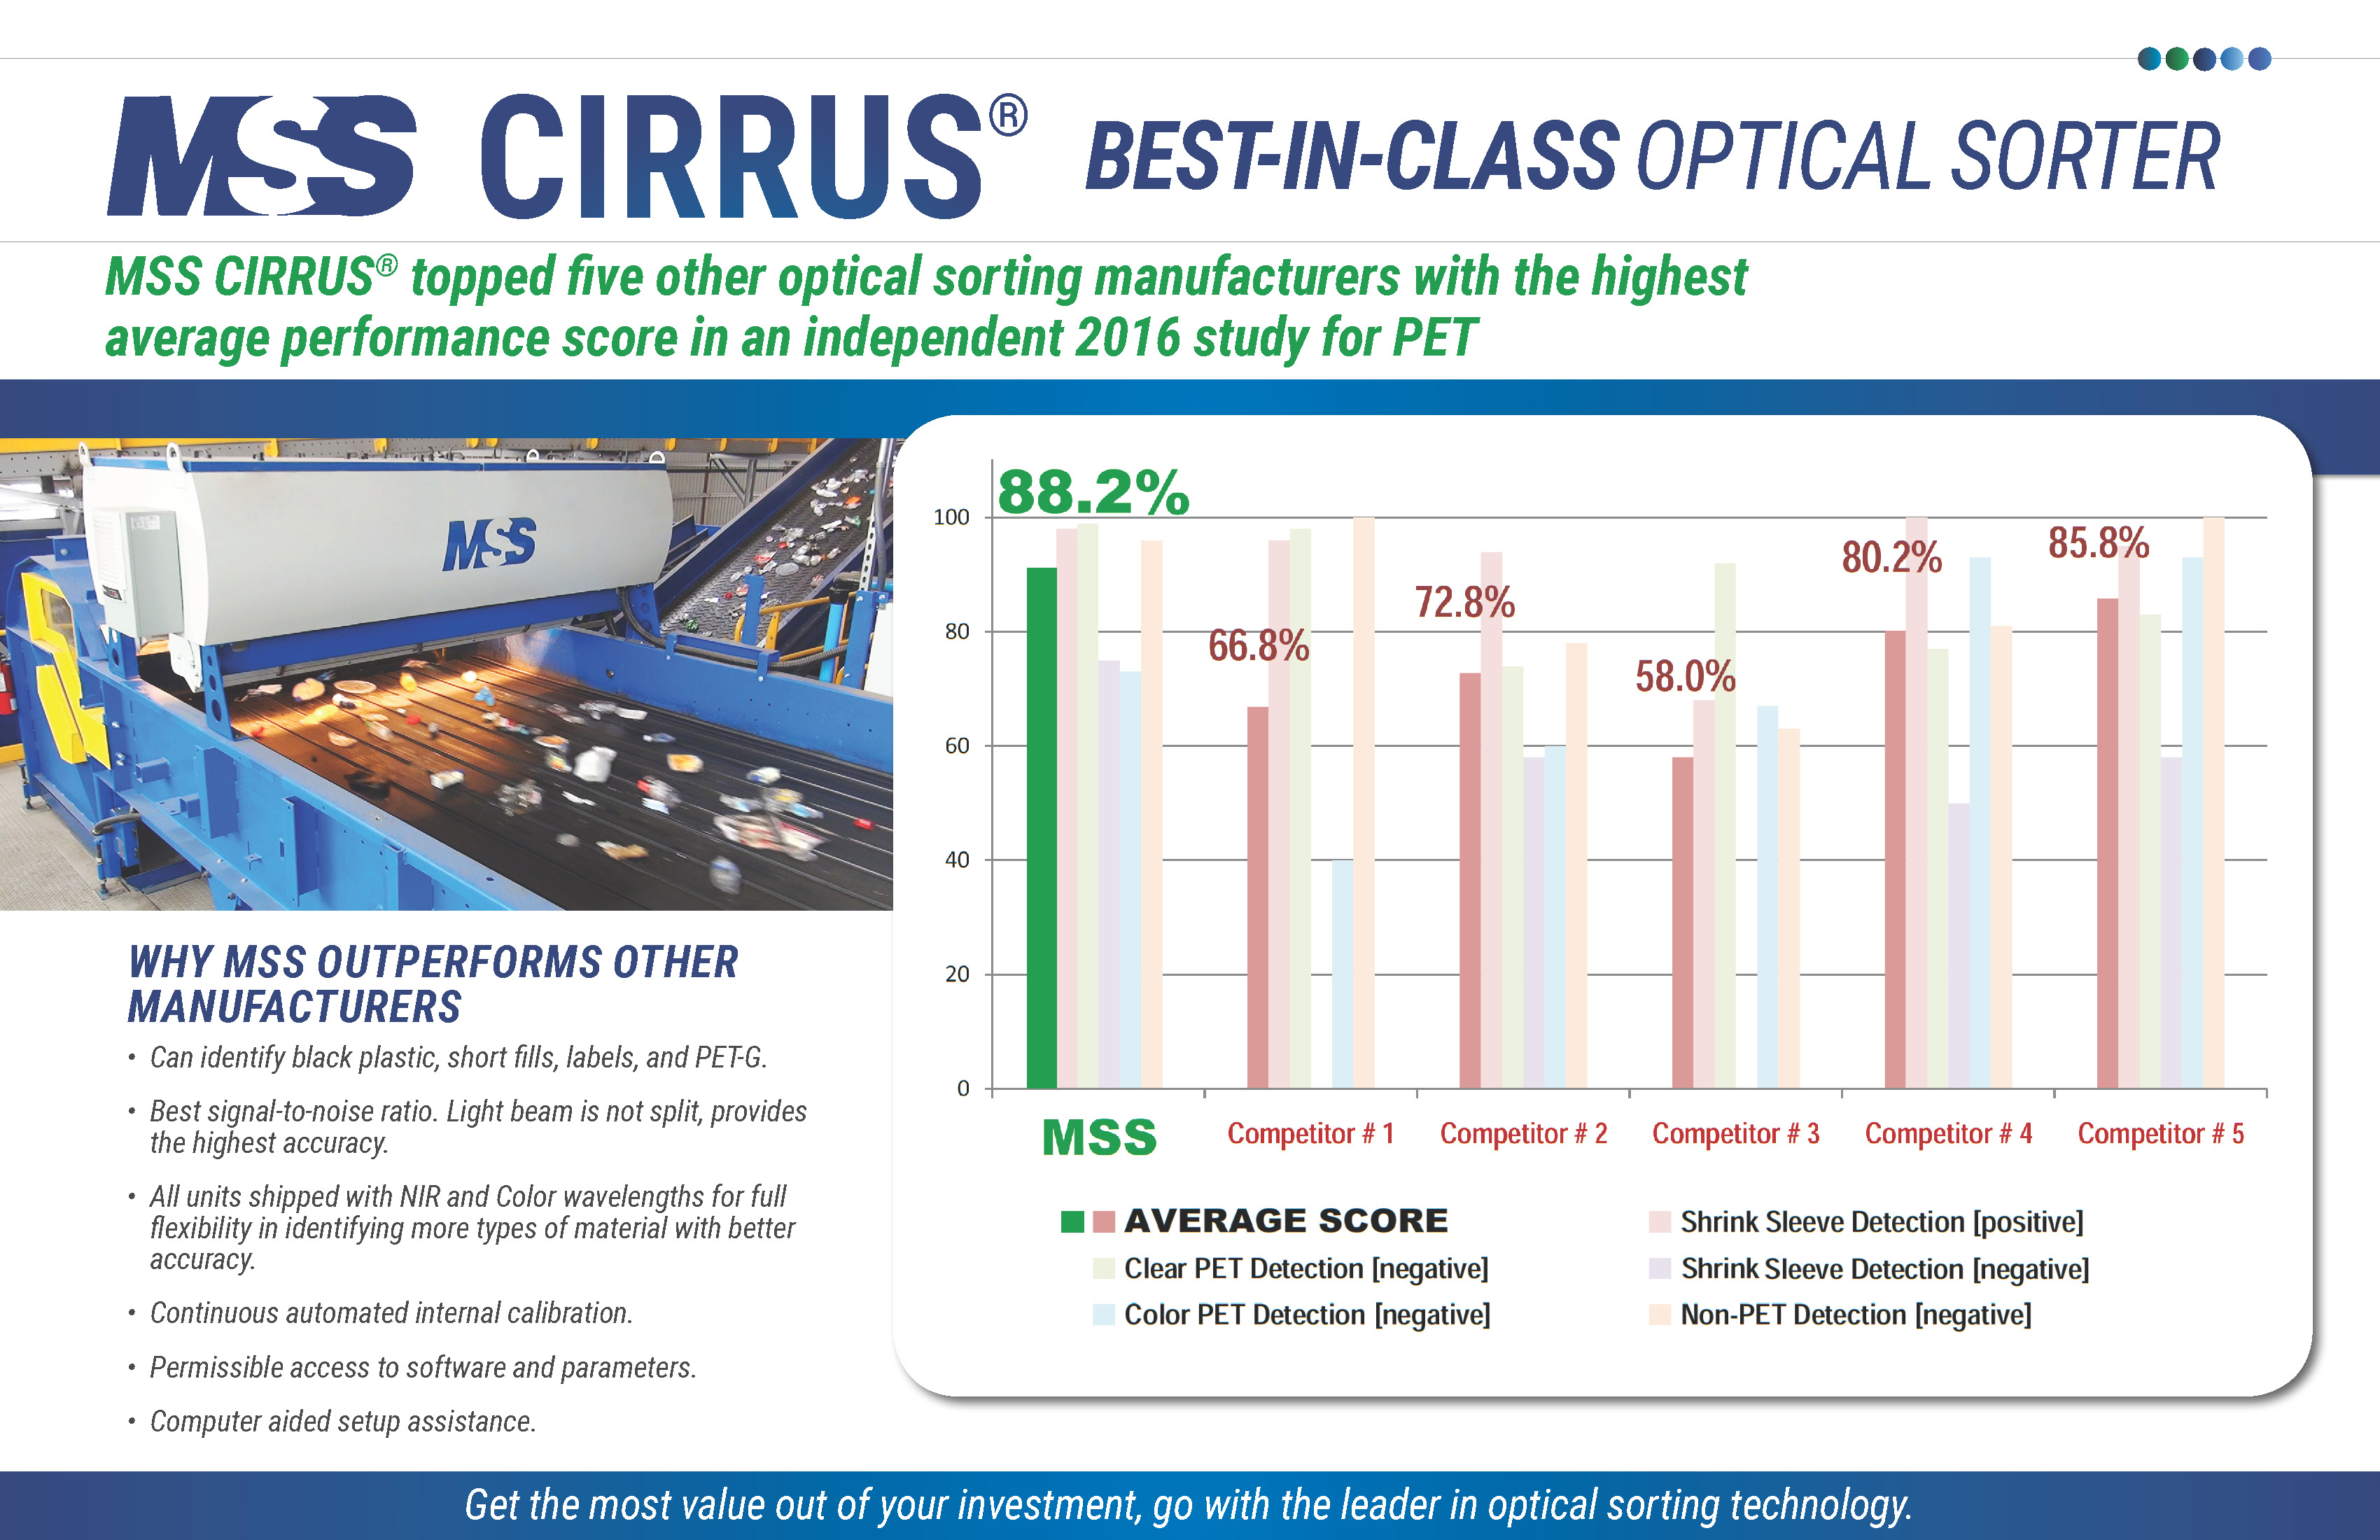 Mss Cirrus Optical Sorter Achieves High Score In Independent Study Electronics Scrap Recycling Pictures Zimbio Single Stream Construction And Demolition Waste Commercial Industrial To Energy Municipal Solid Electronic